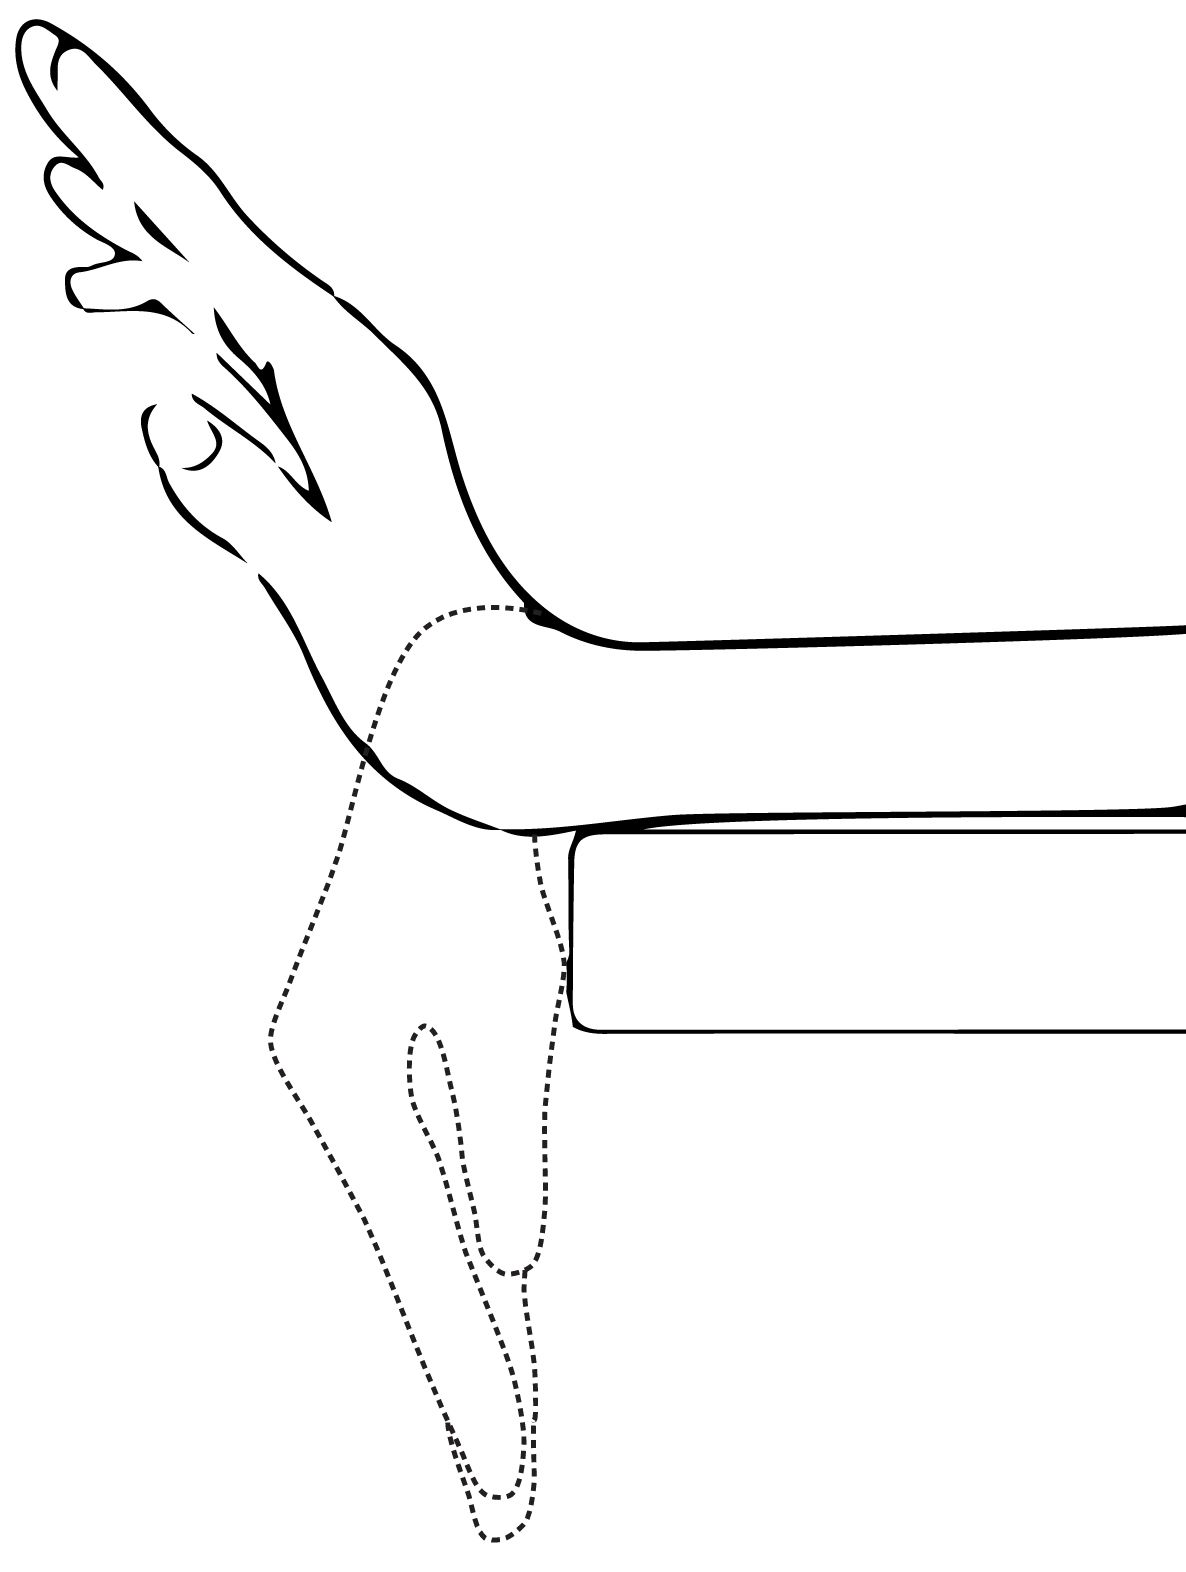 HB Hands Tendon Glide Exercises Ejercicios Hands